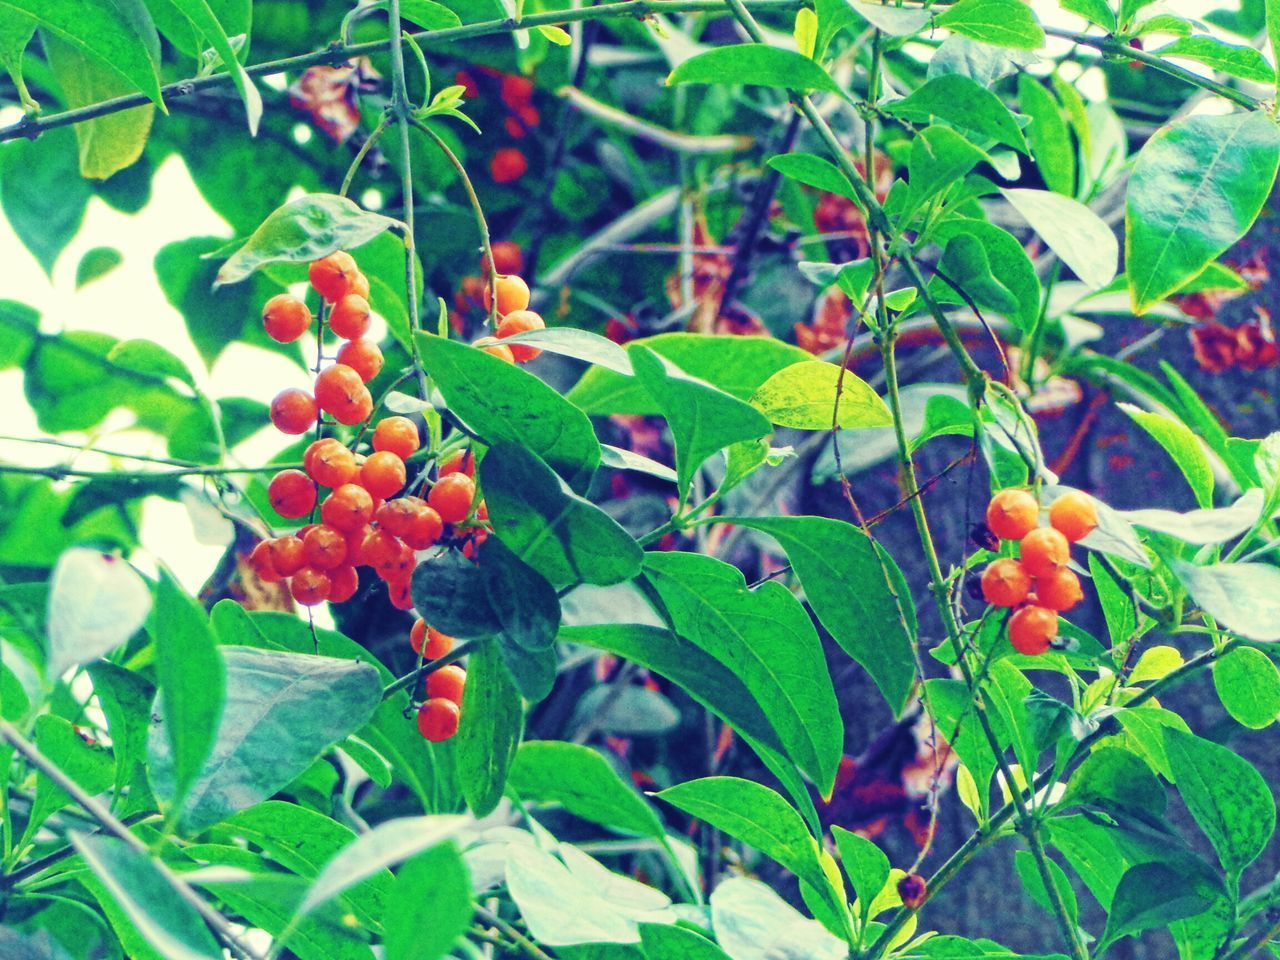 Growth Leaf Tree Fruit Green Color Nature Food And Drink Freshness Focus On Foreground Growing Close-up No People Outdoors Food Day Beauty In Nature Rowanberry